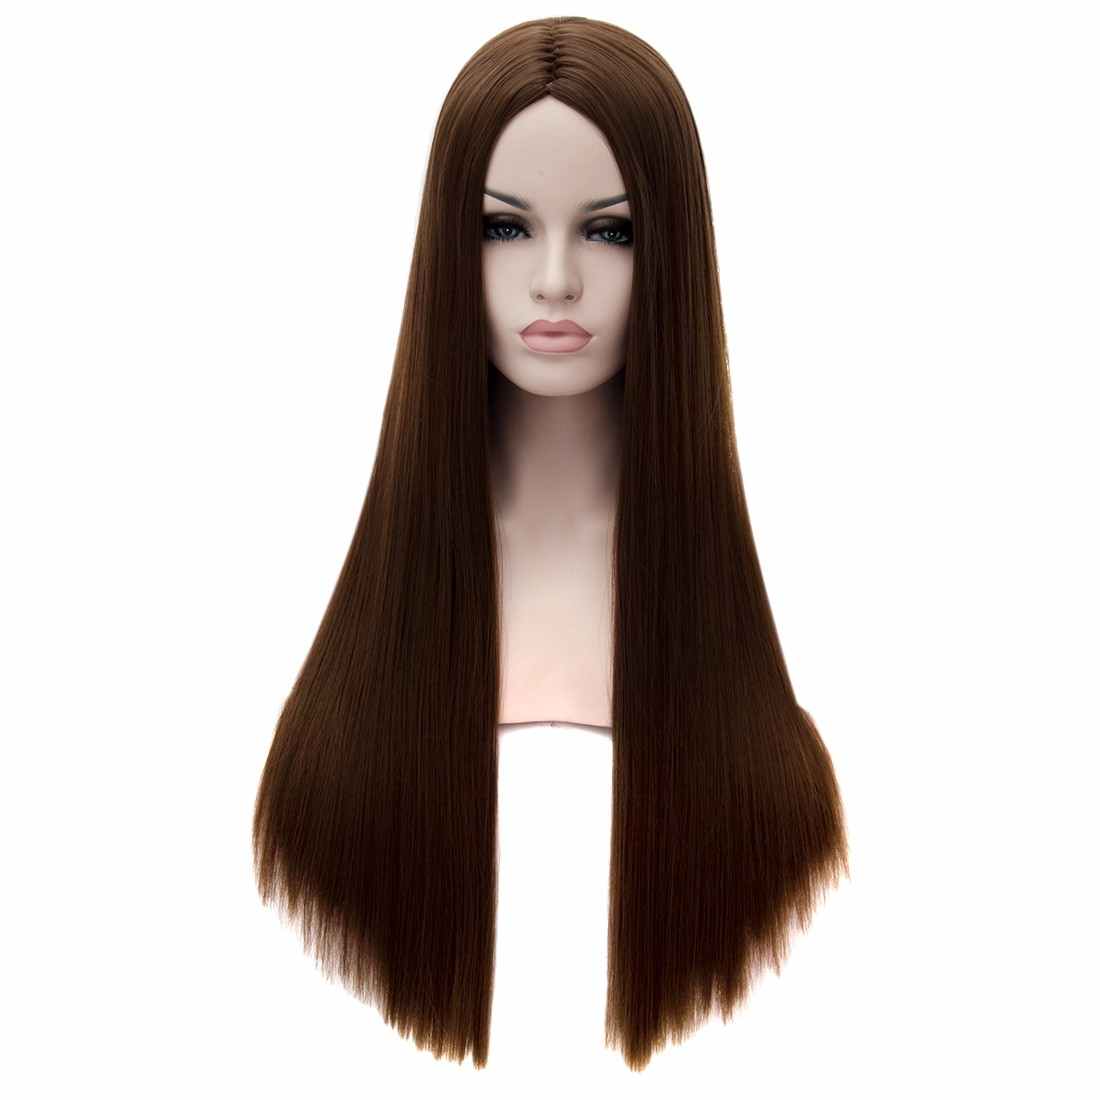 Women New Dark Brown Central Parting Long Straight Hairstyle Full Charming Wigs<br><br>Aliexpress